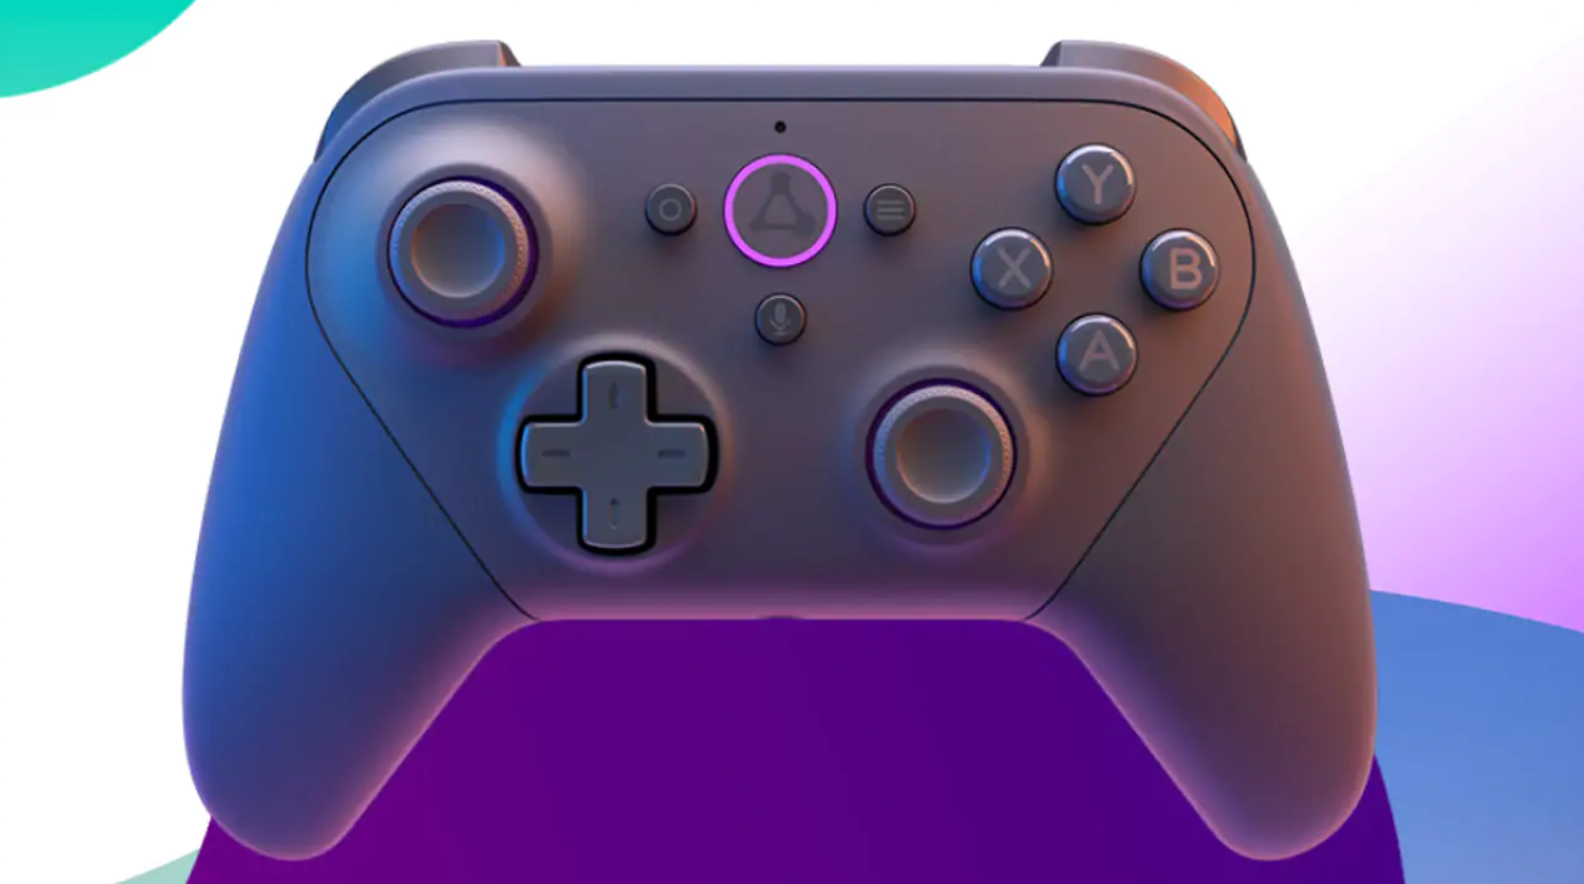 The Luna Controller in all its glory facing front.